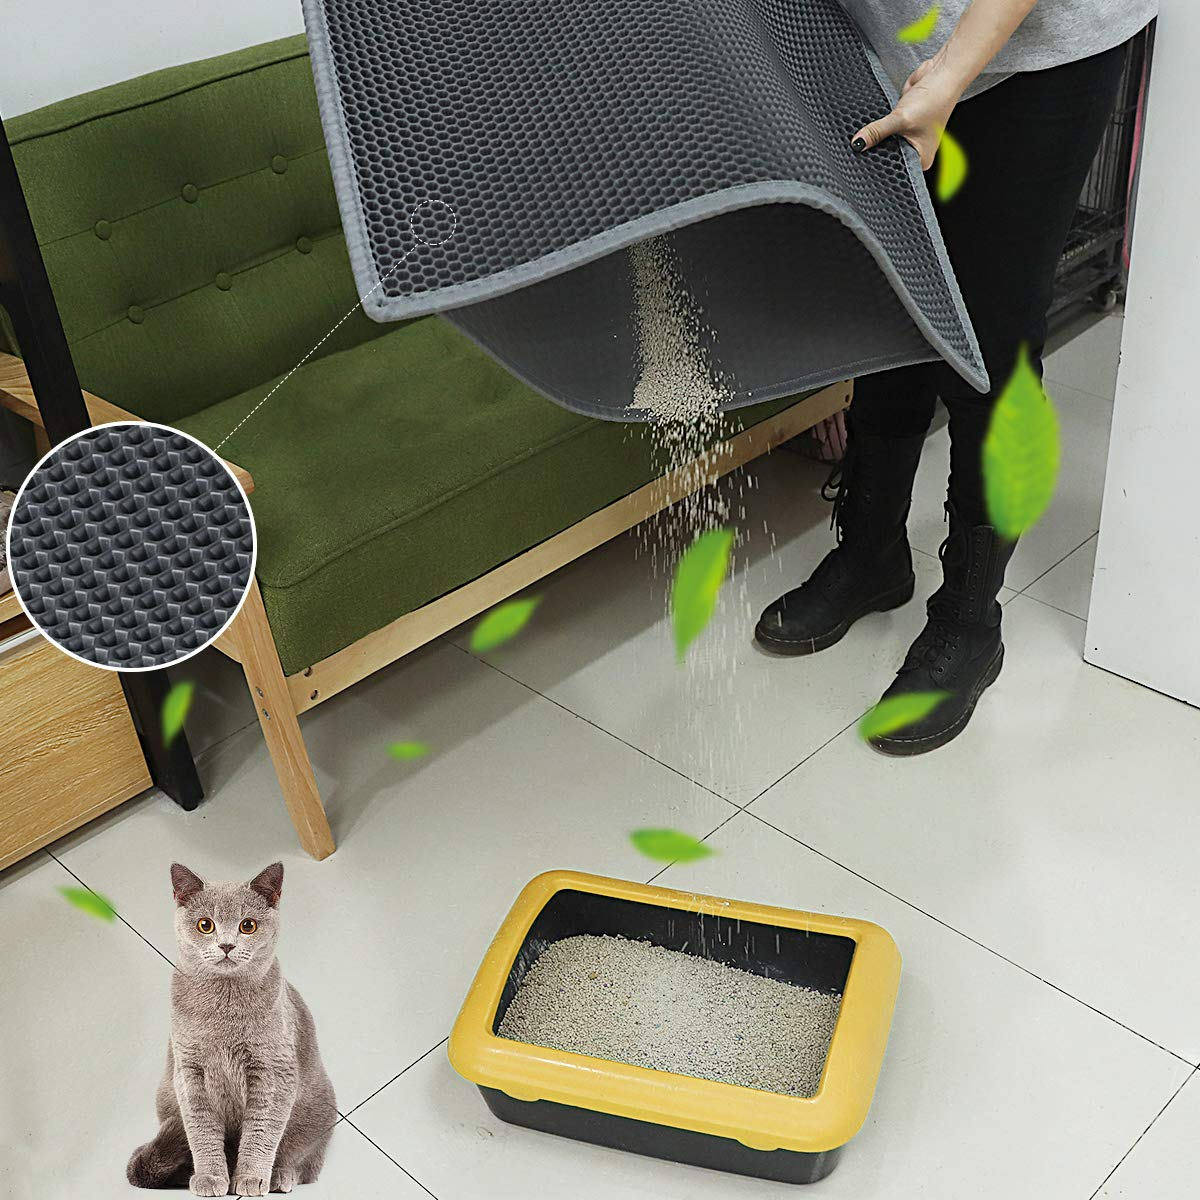 Awe Inspiring Waretary Professional Cat Litter Mat Xl Jumbo 30 X 24 Honeycomb Double Layer Waterproof Urine Proof Trapping Mat For Litter Boxes Large Size Easy Uwap Interior Chair Design Uwaporg